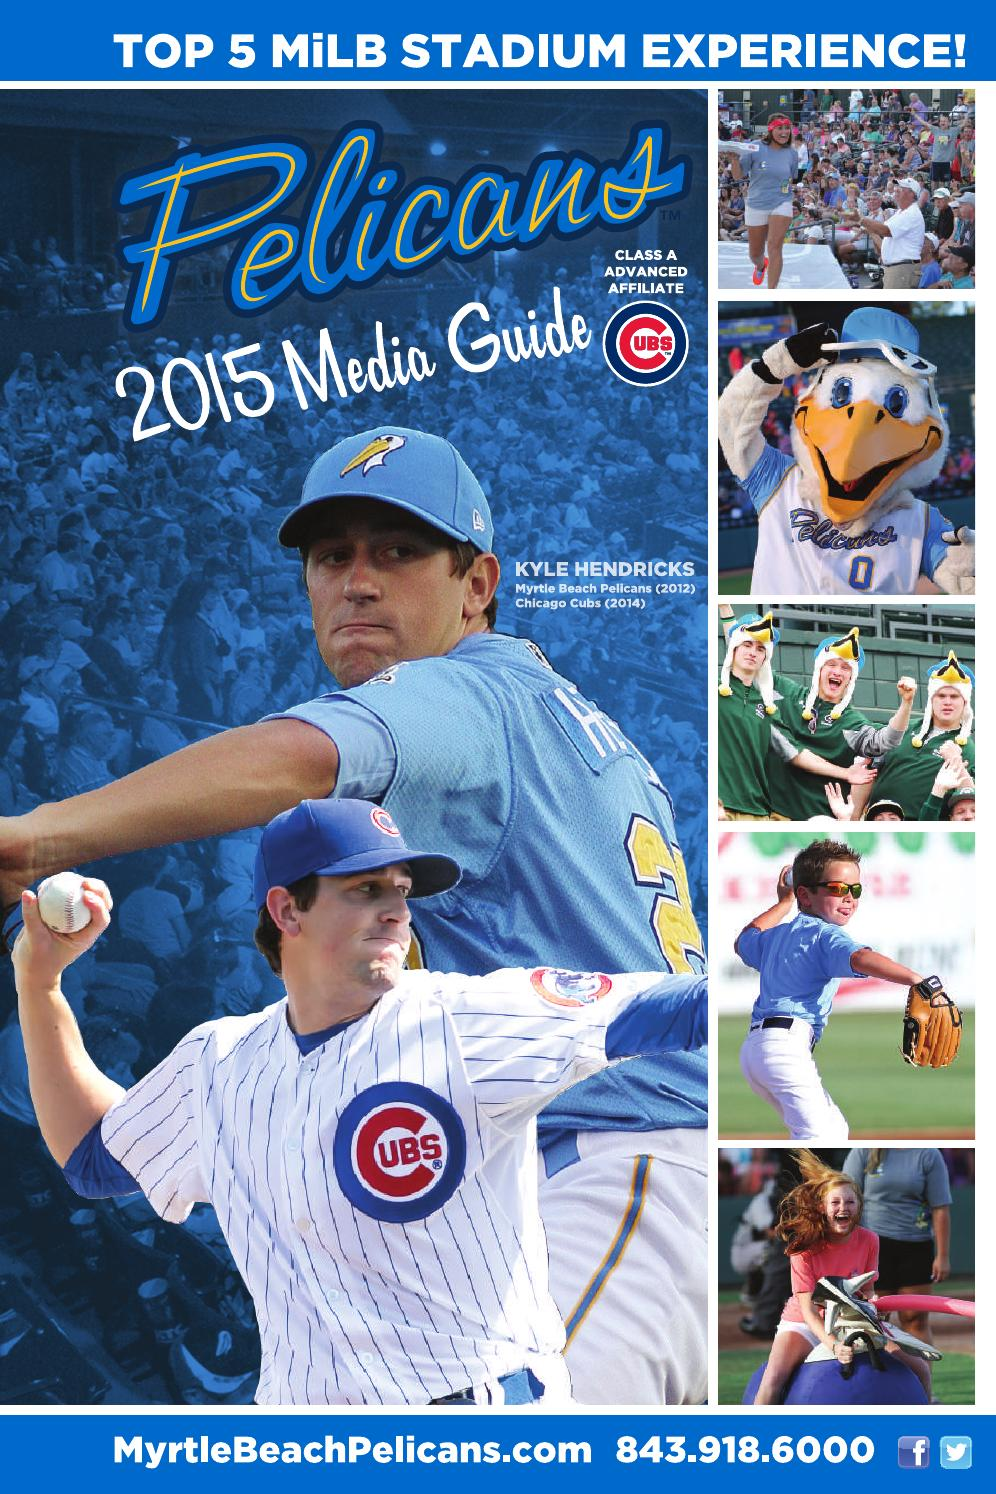 f85d70fa 2015 Myrtle Beach Pelicans Media Guide by Splash Pelican - issuu